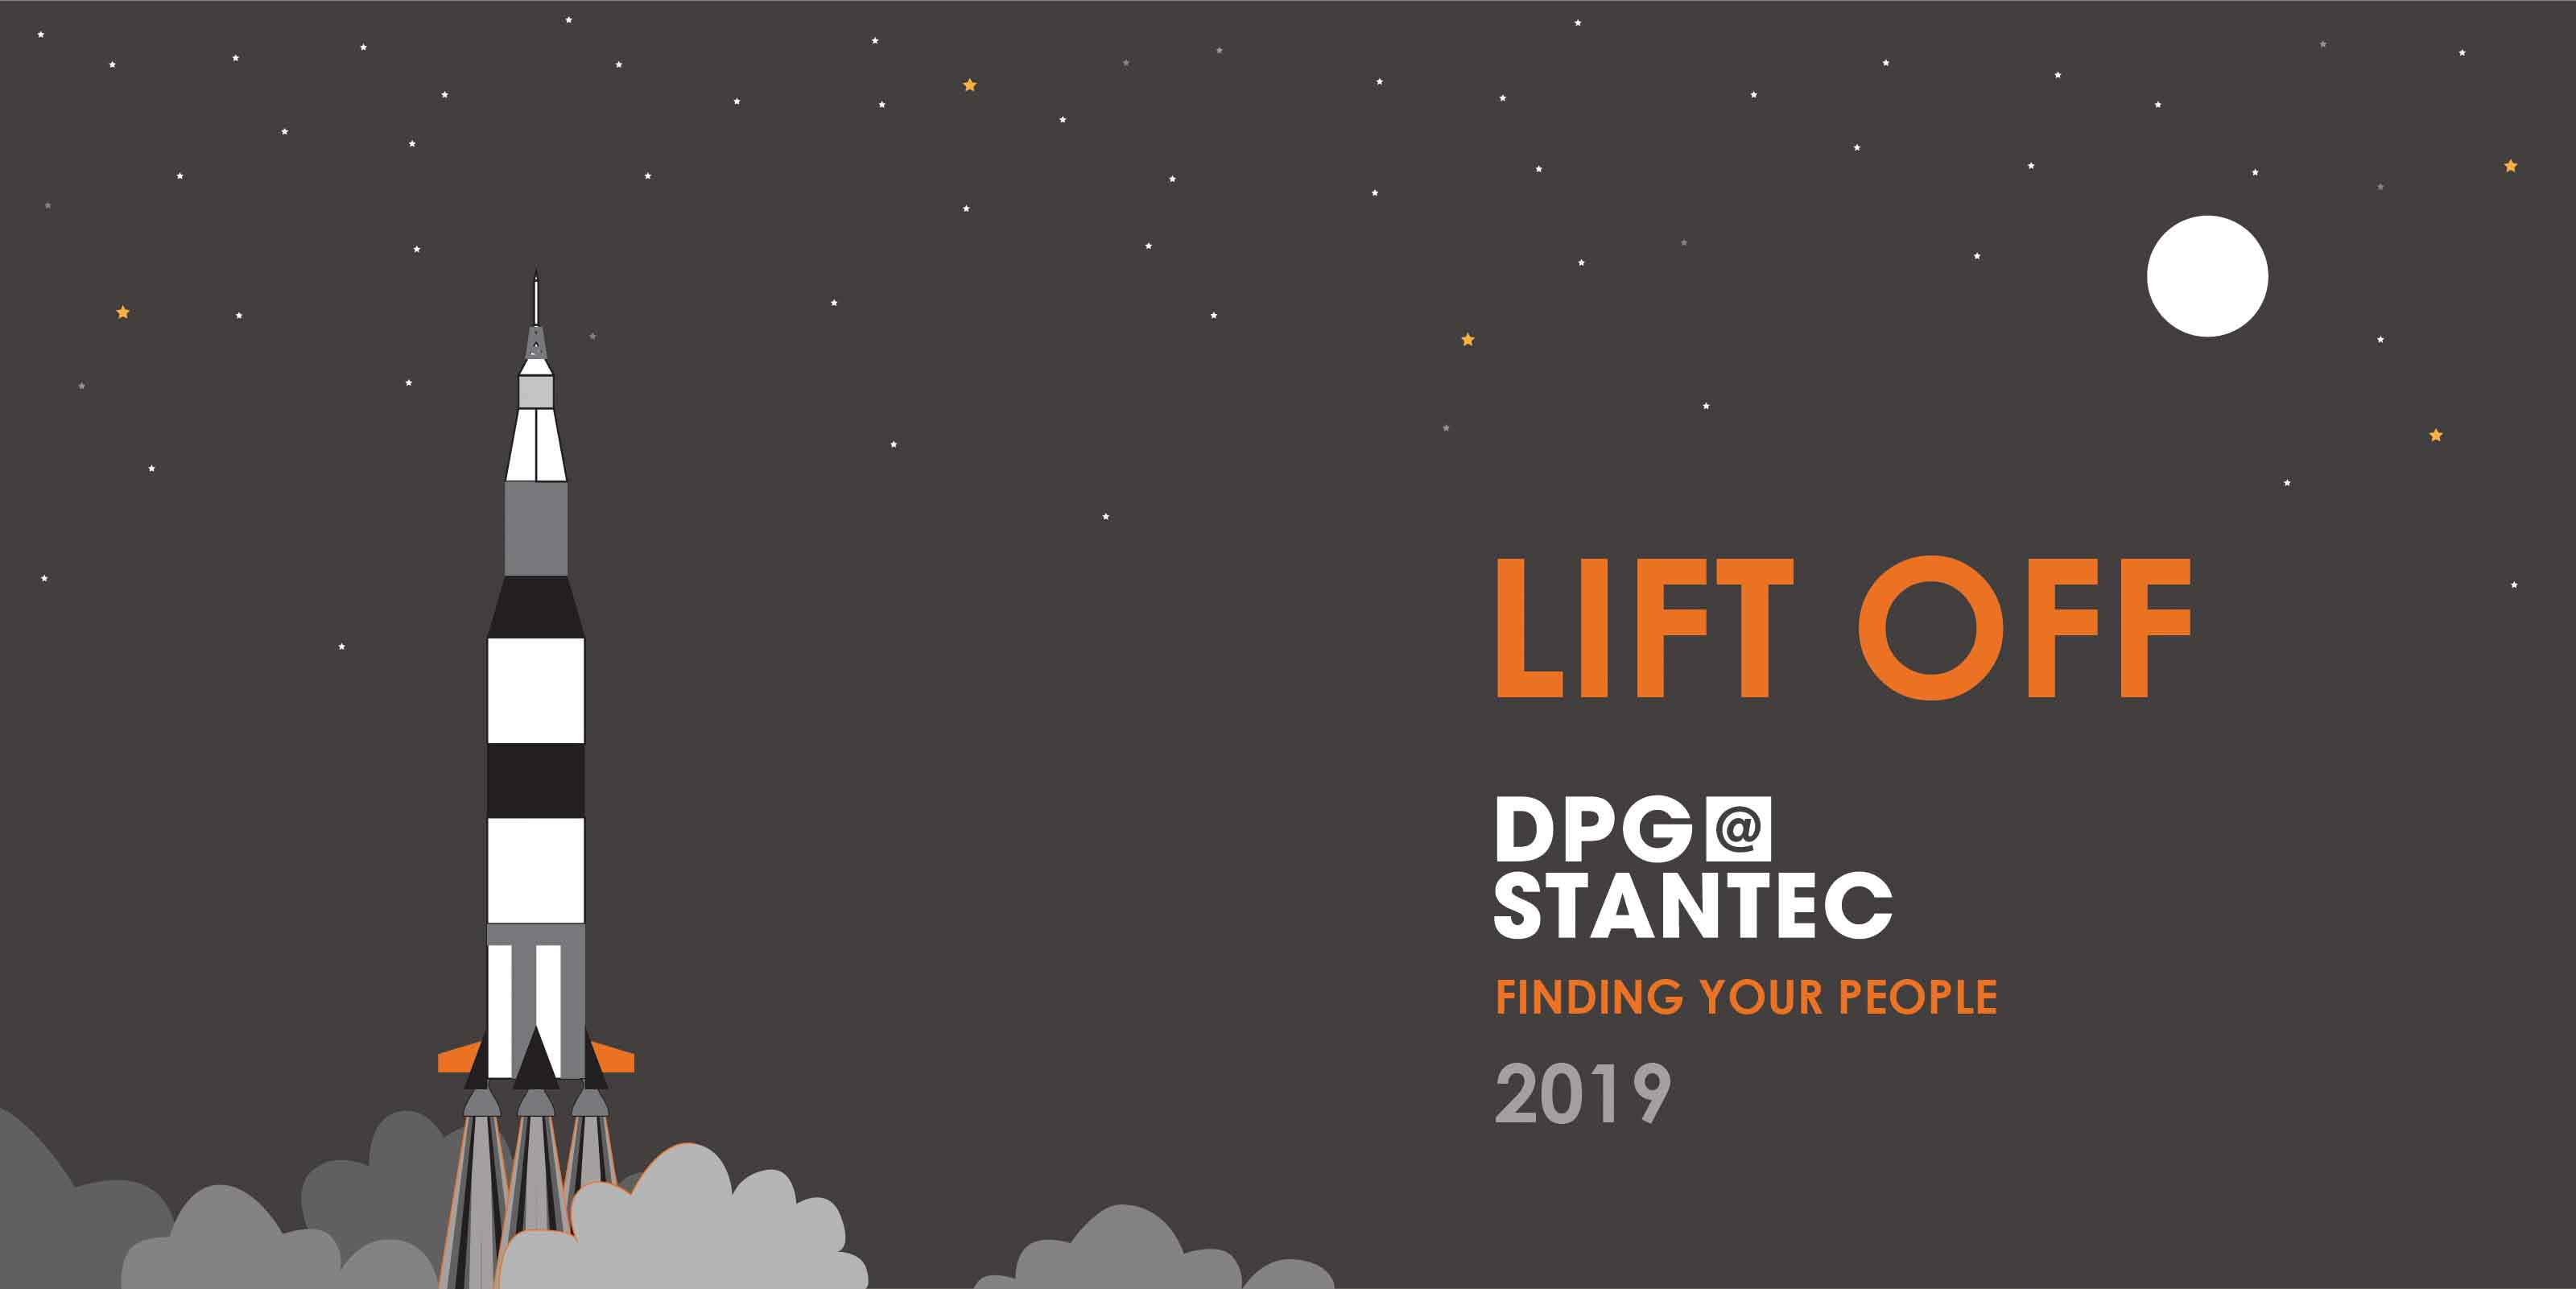 Lift Off—DPG@Stantec